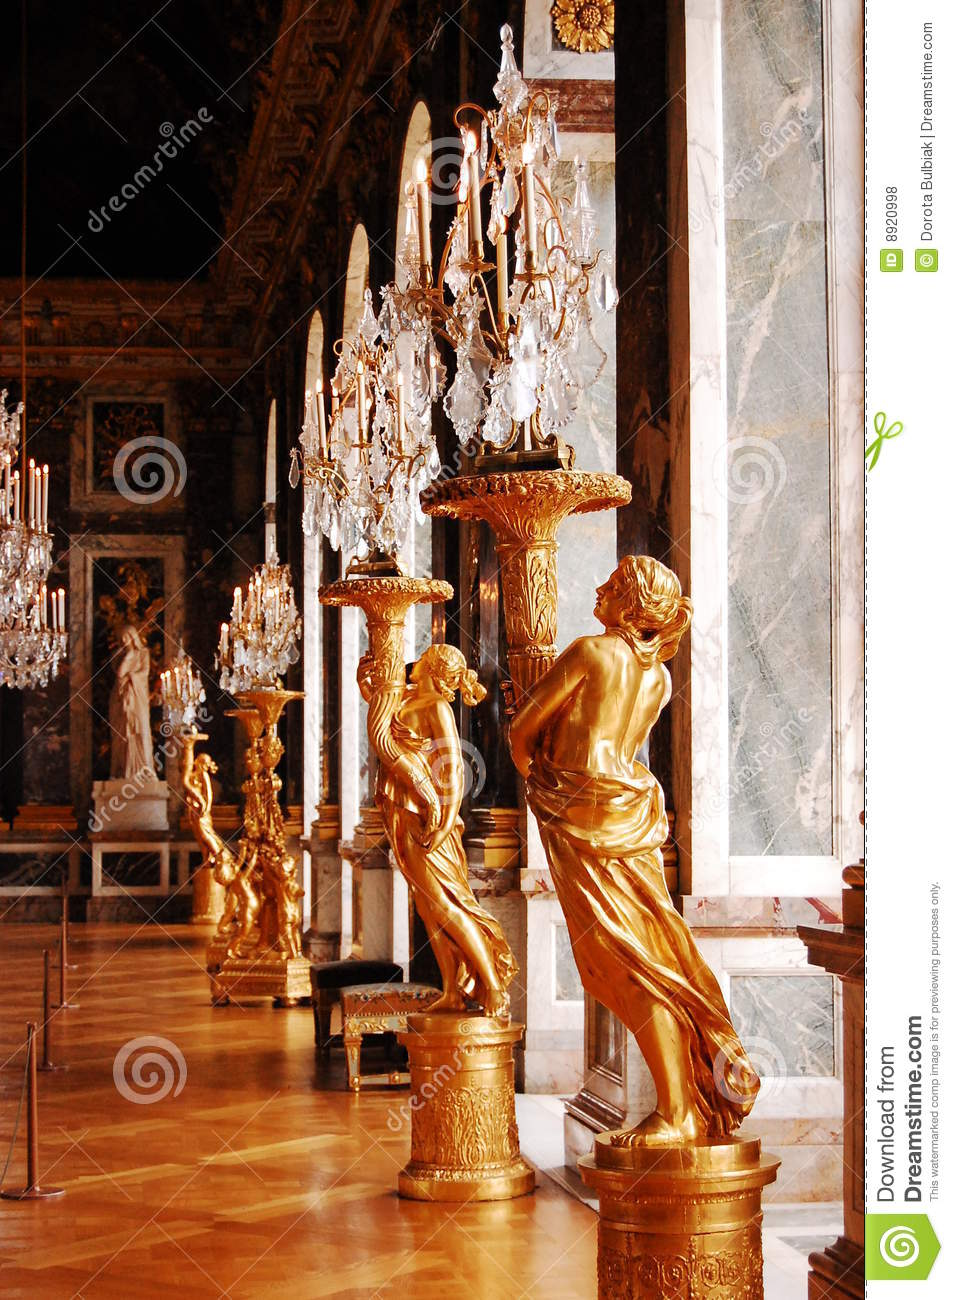 Crystal Chandeliers And Gold Statues In Versailles